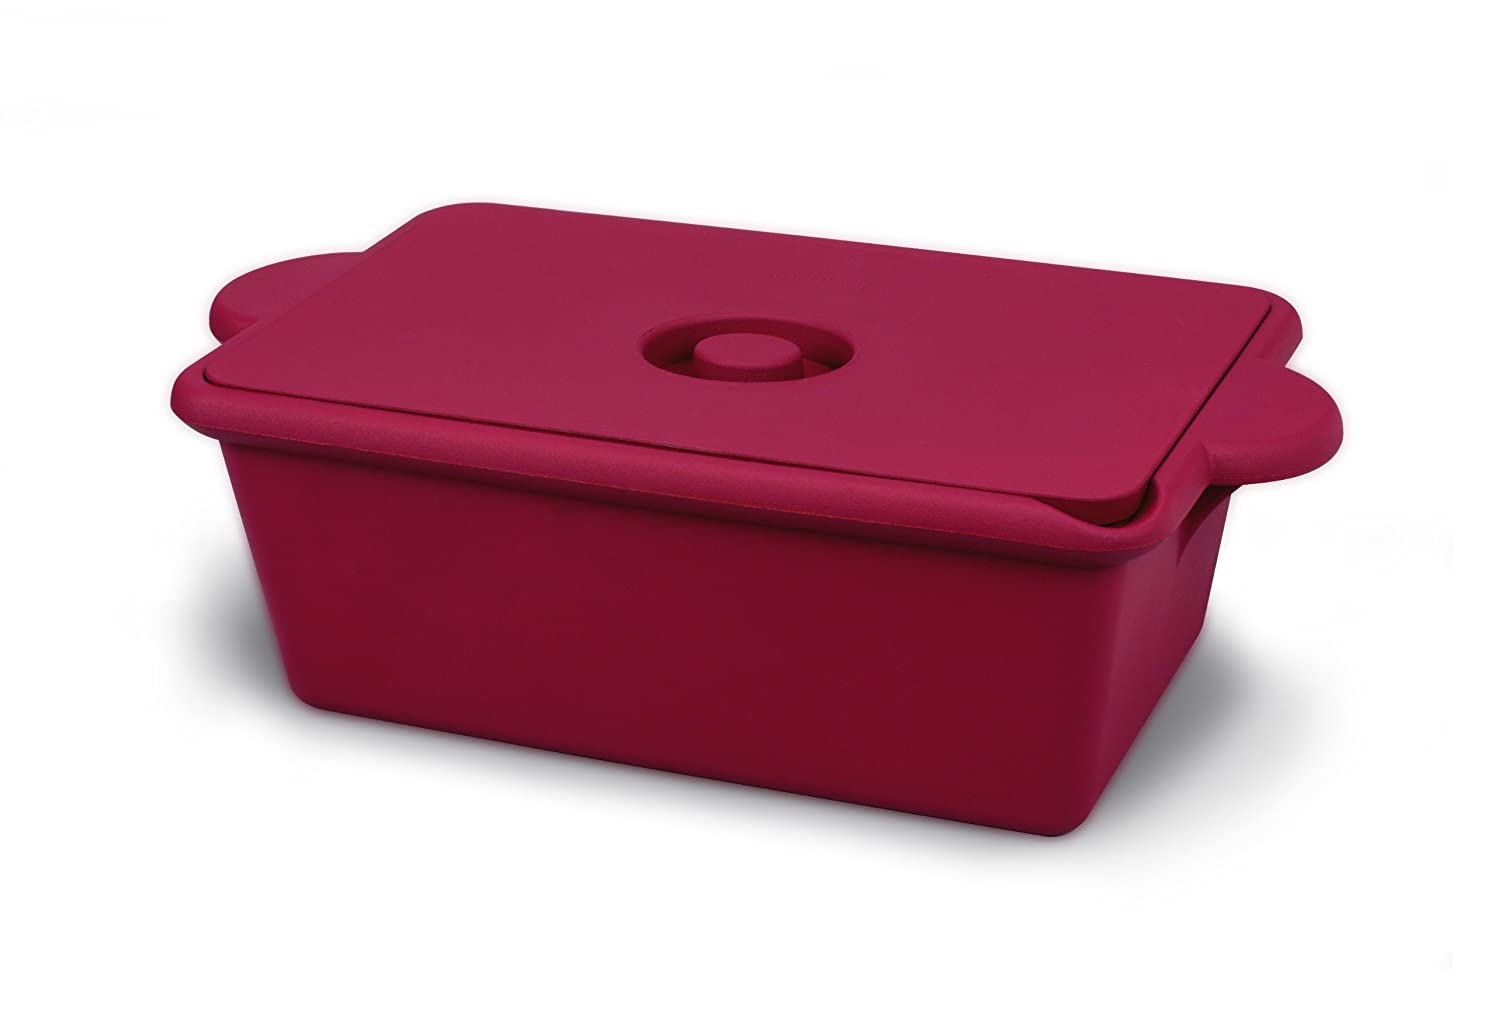 Heathrow Scientific HD28729R True North Cool Container Pan with Ergonomic Handle, Polyurethane, 9L Capacity, Ruby